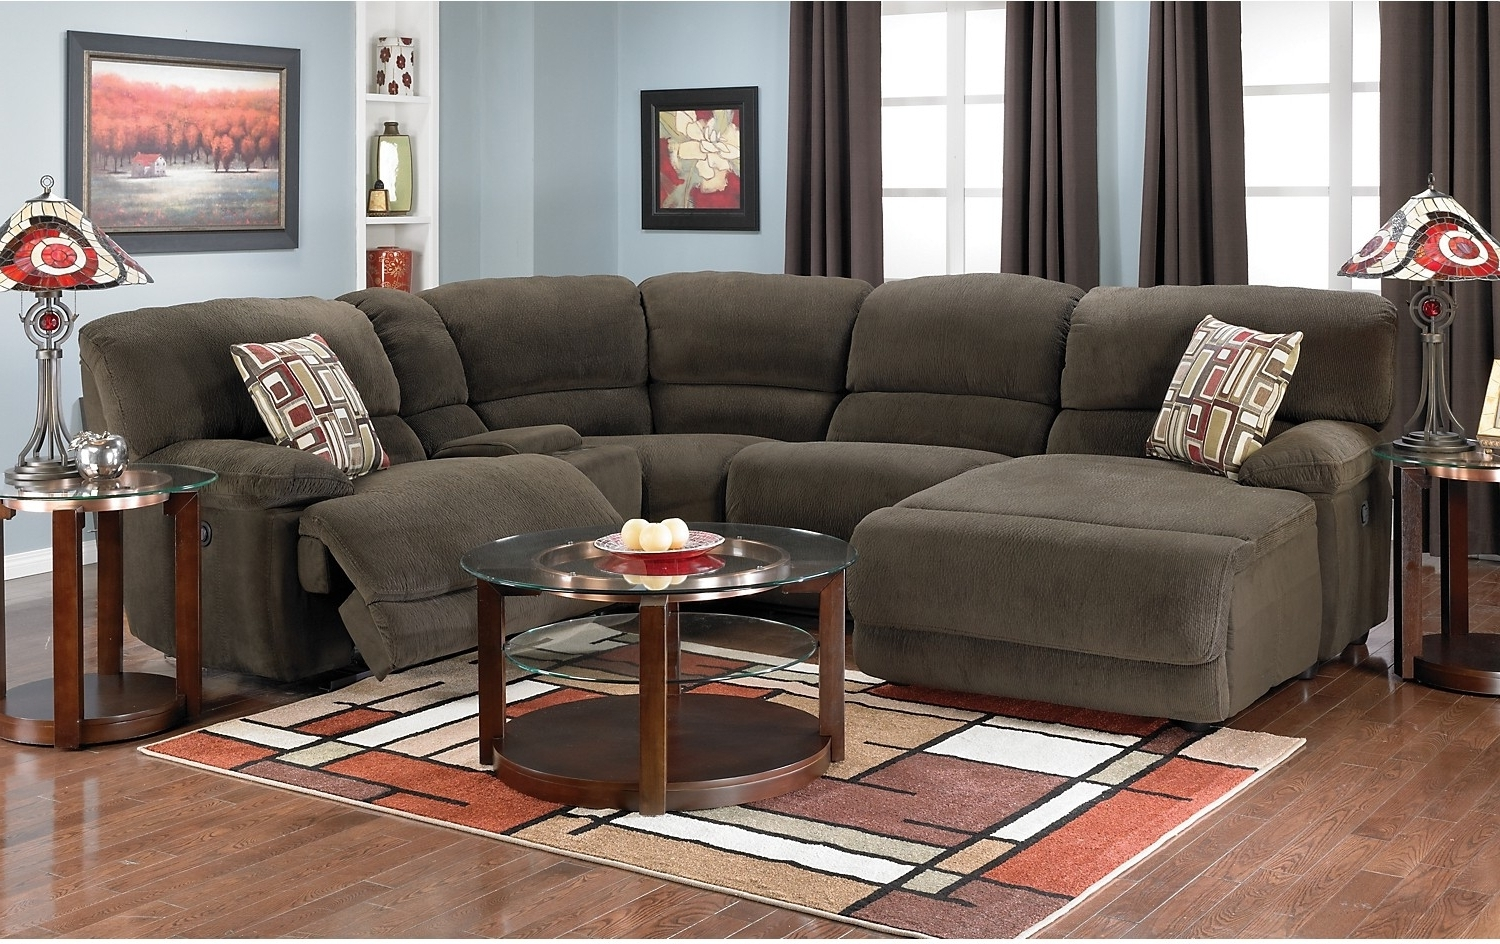 The Brick Sectional Sofas – Cleanupflorida Regarding Trendy The Brick Sectional Sofas (View 8 of 20)